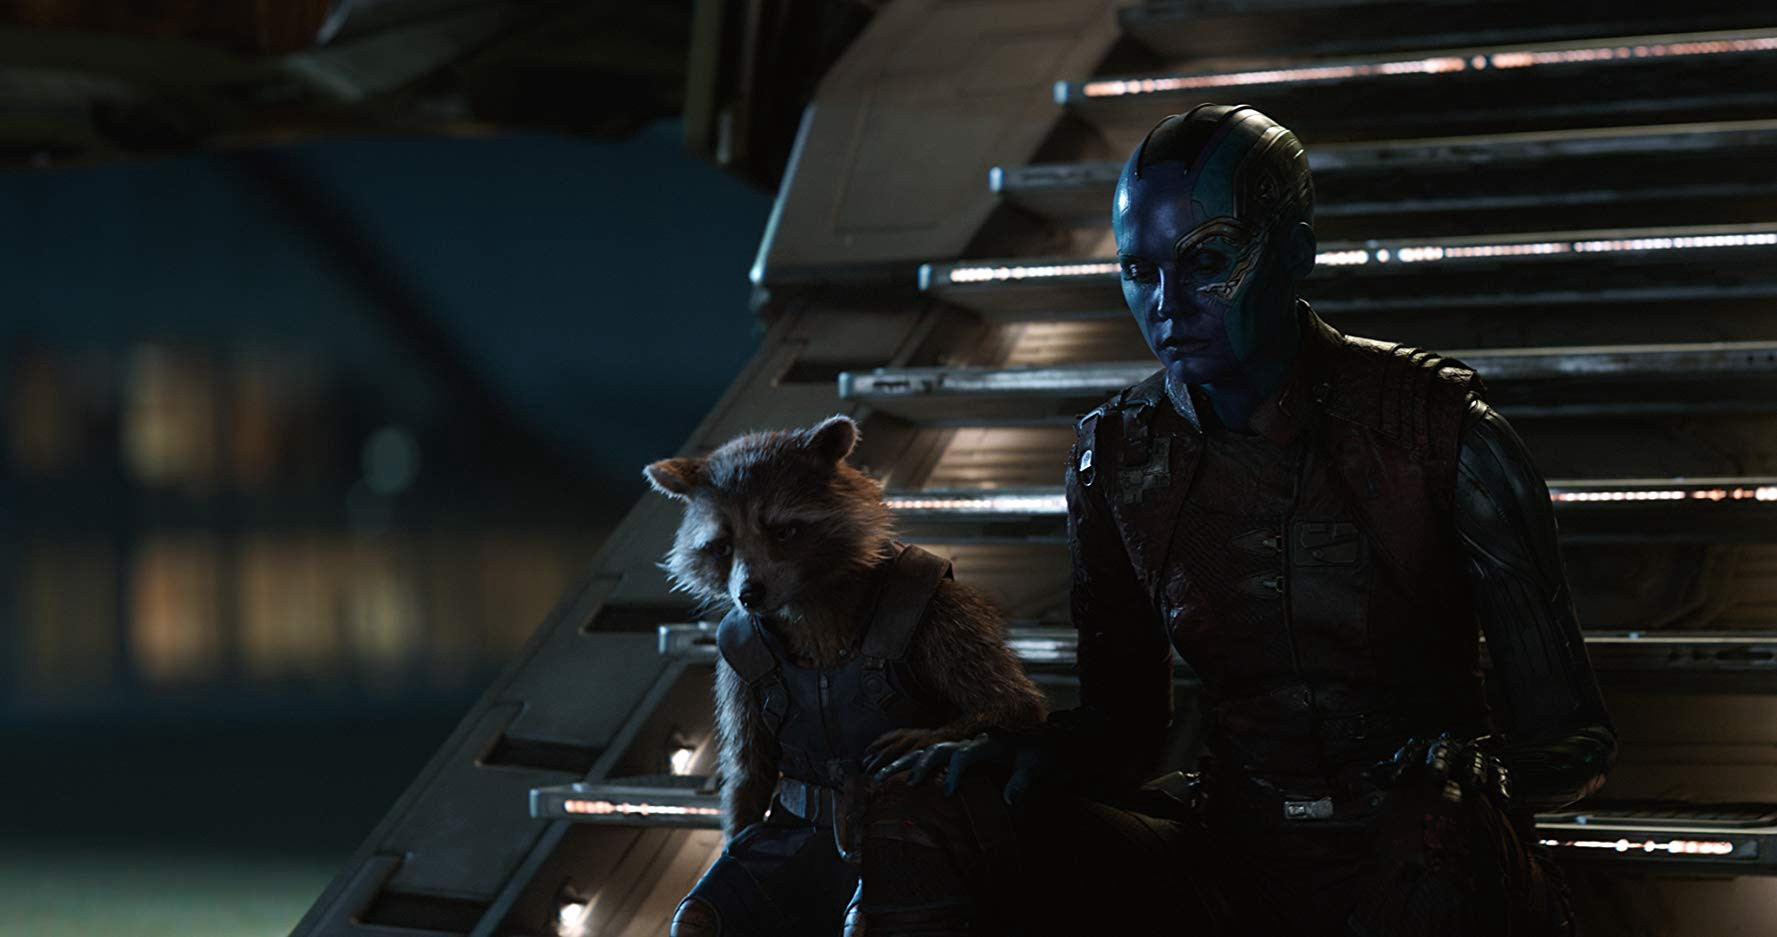 Avengers: Endgame is Self-Congratulatory Fanservice (Spoiler